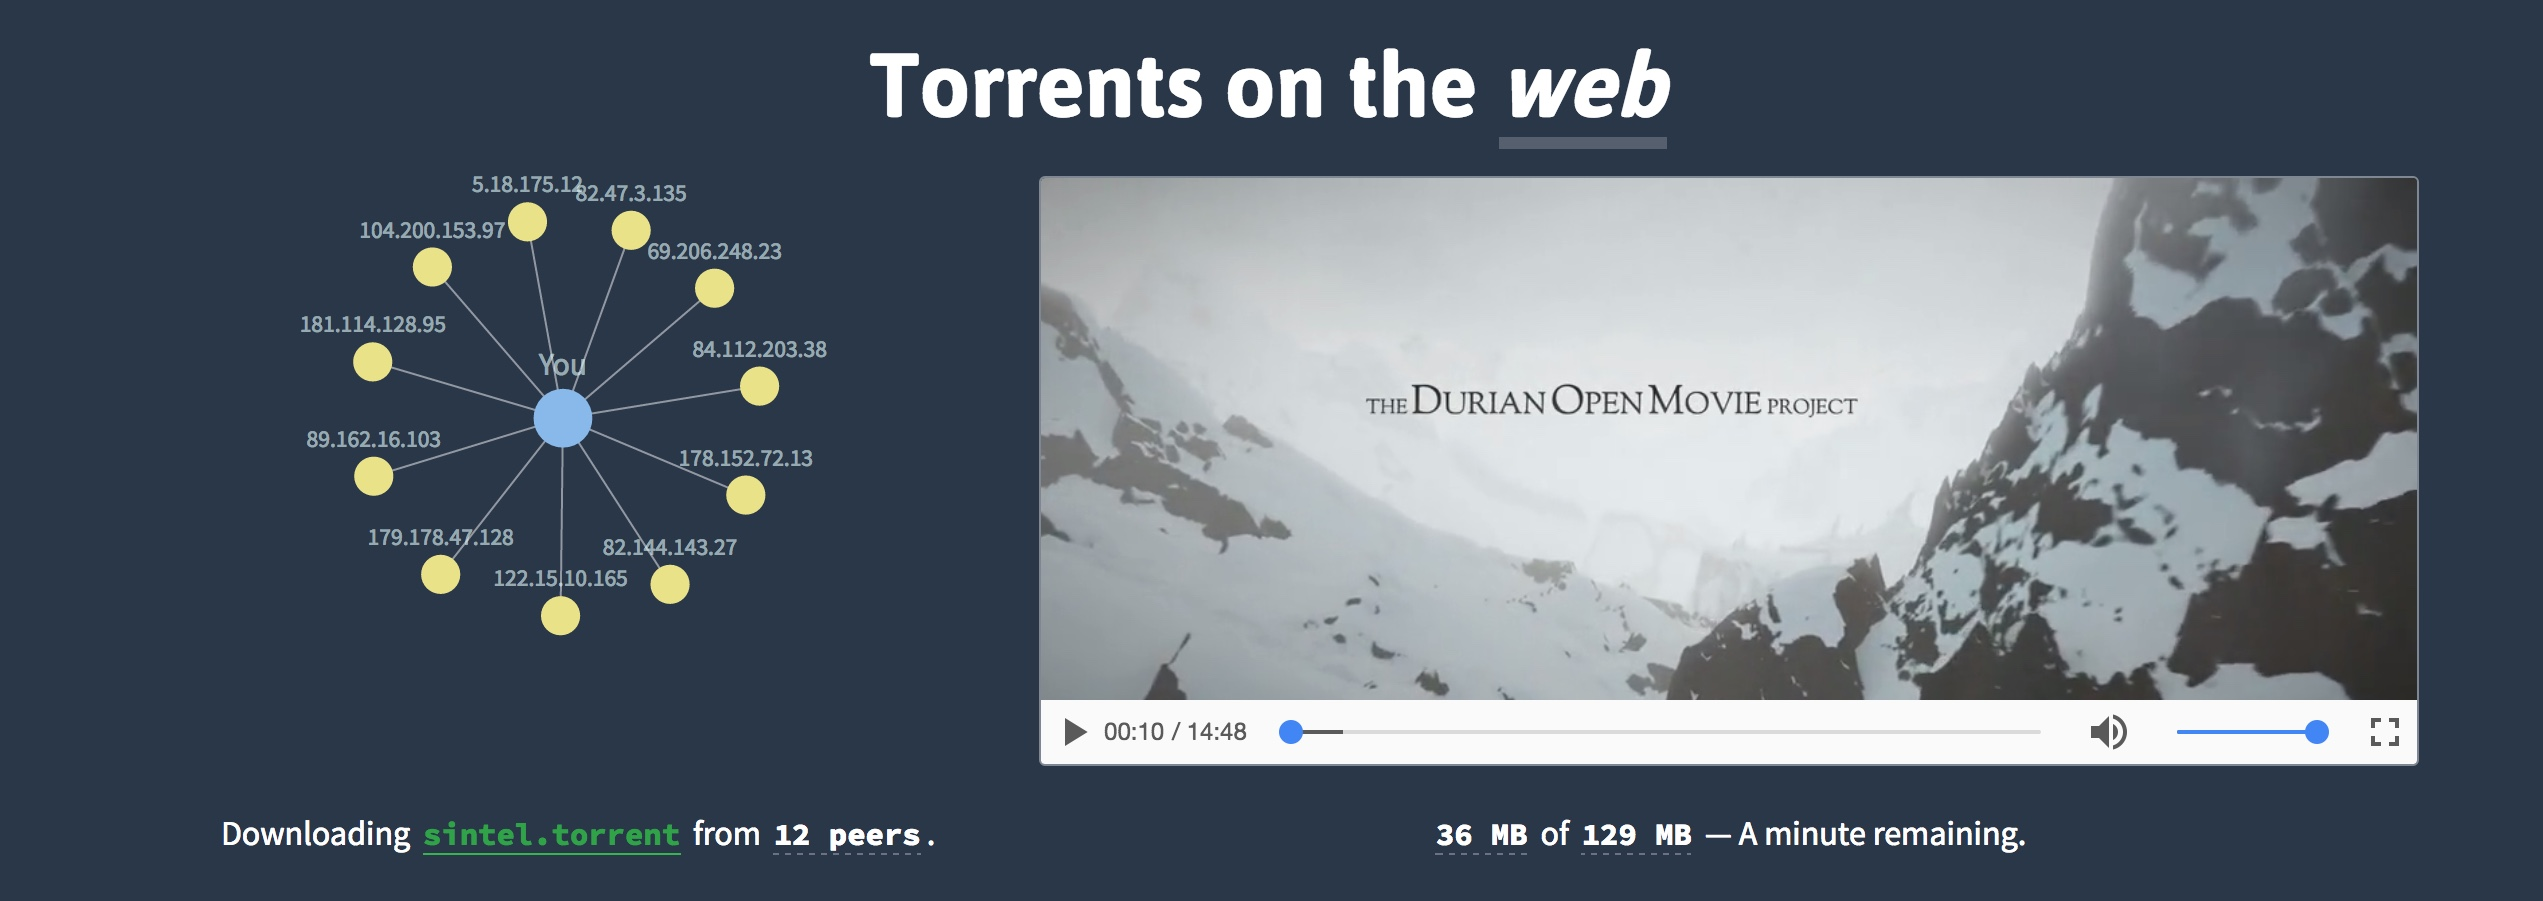 webtorrent homepage